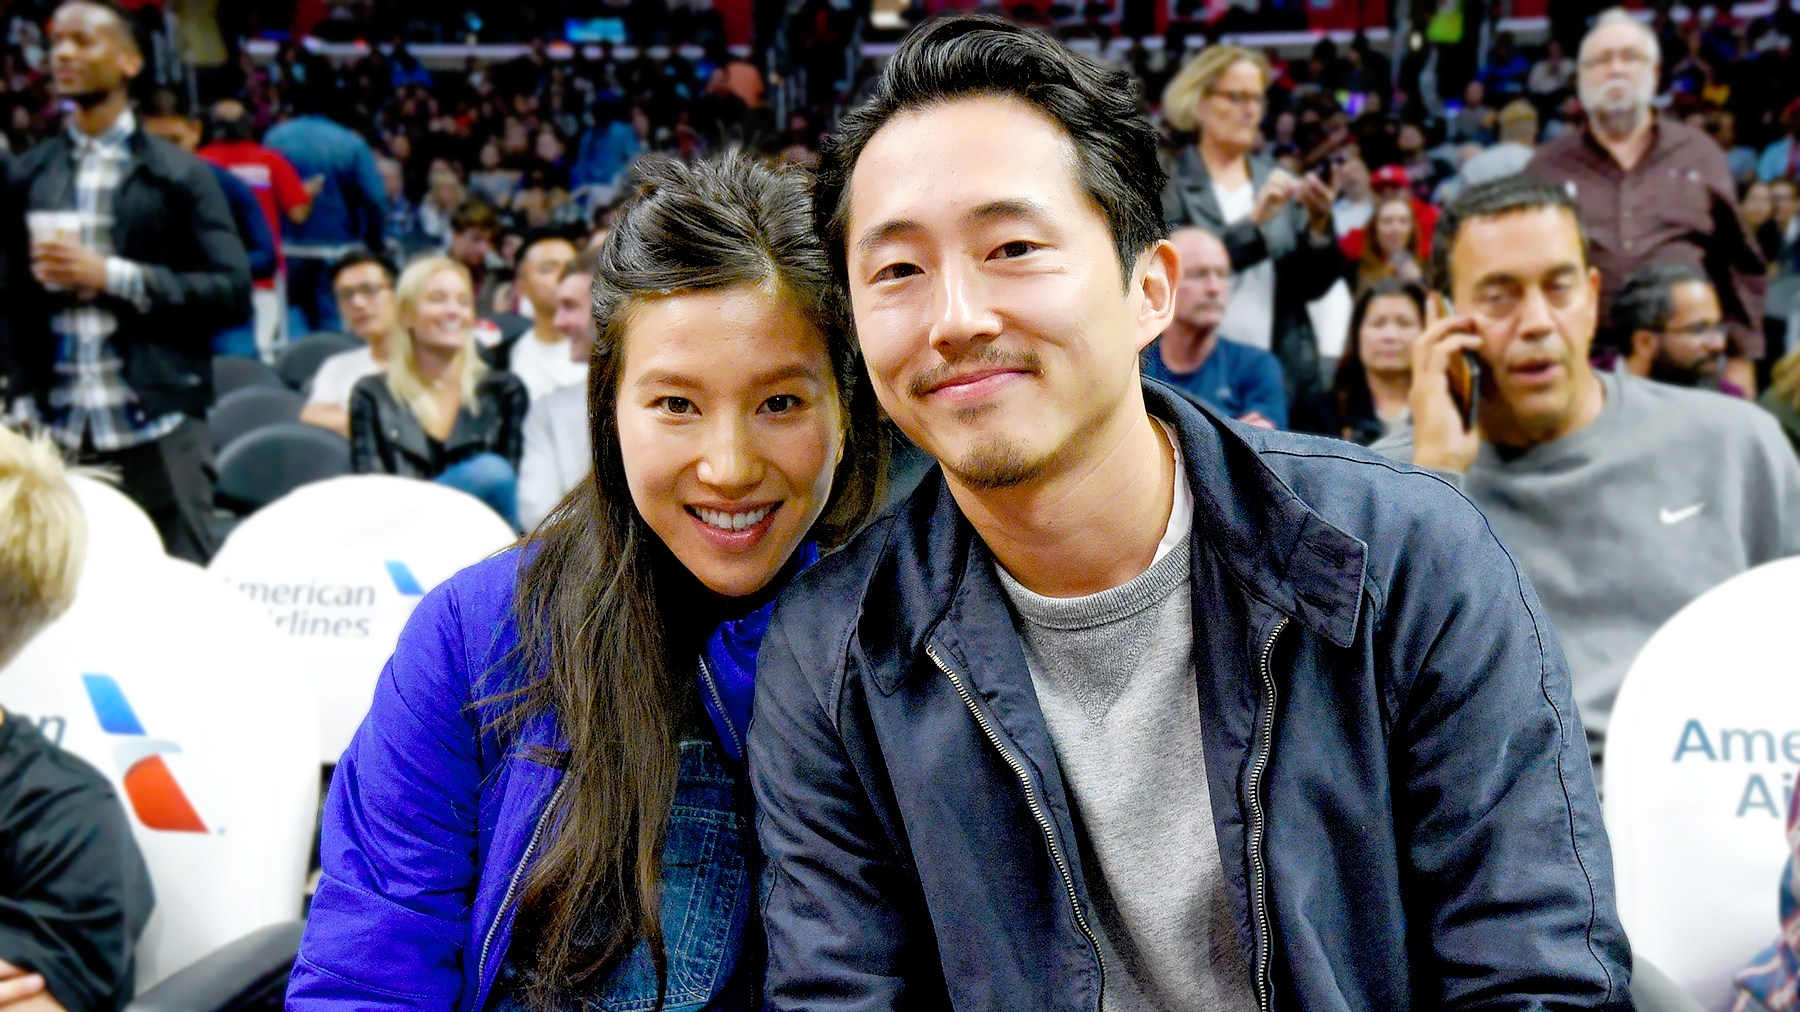 Steven Yeun (R) and Joana Pak attend a basketball game between the Detroit Pistons and the Los Angeles Clippers at Staples Center on November 7, 2016 in Los Angeles, California.